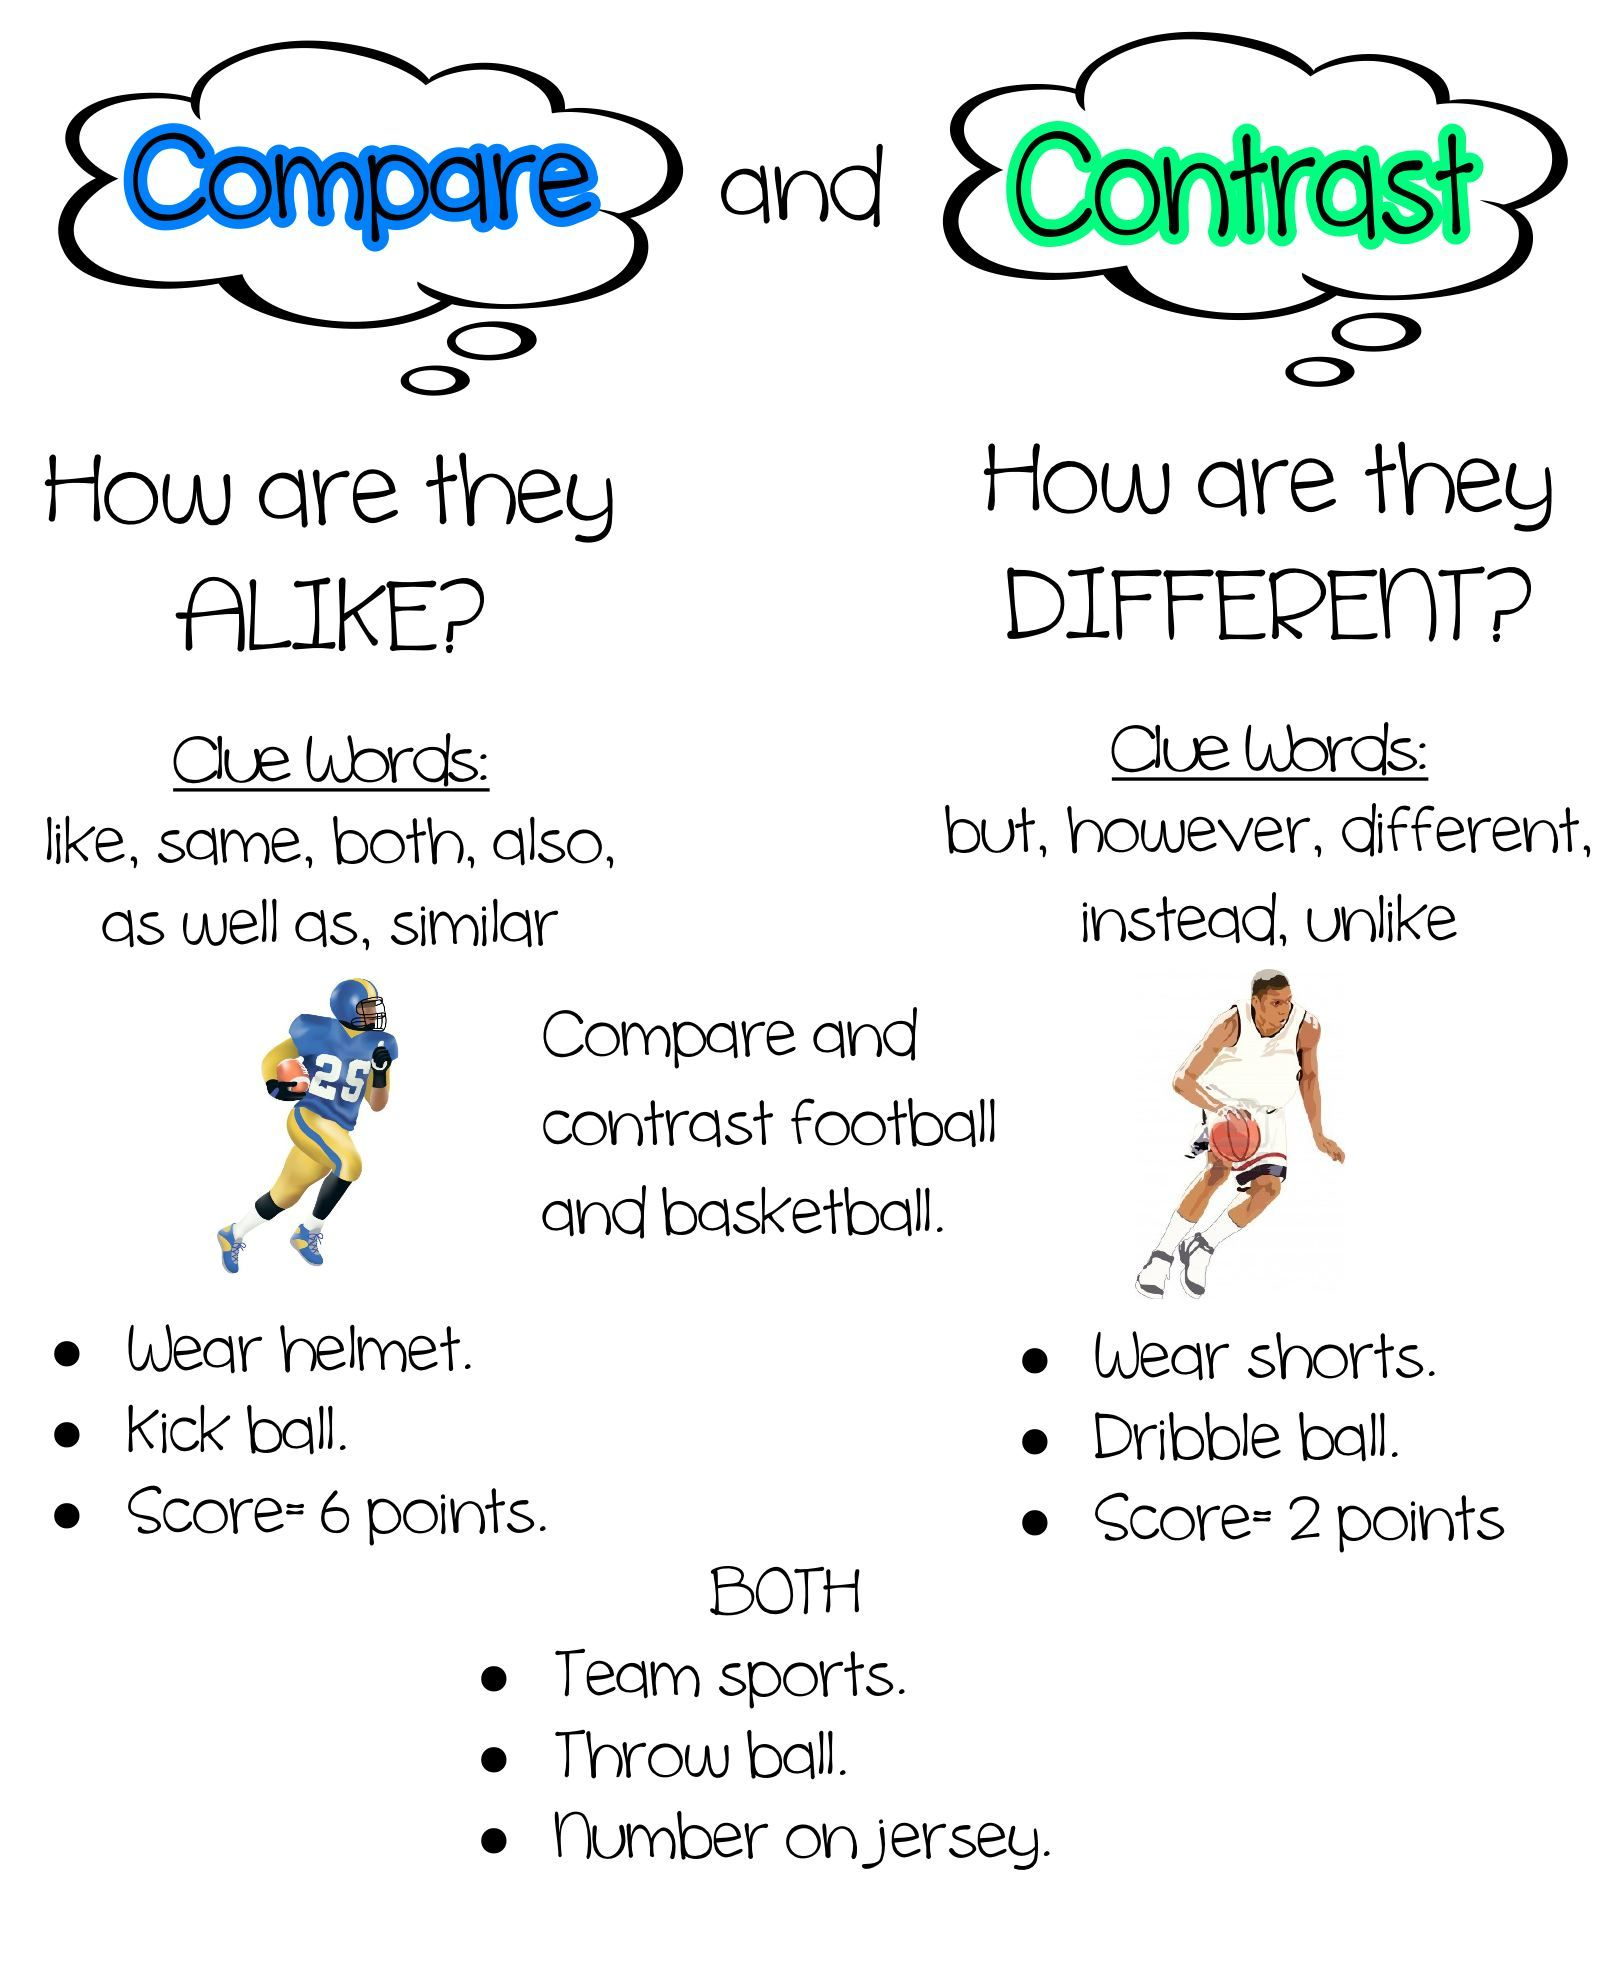 Just Made This To Introduce Compare And Contrast To My